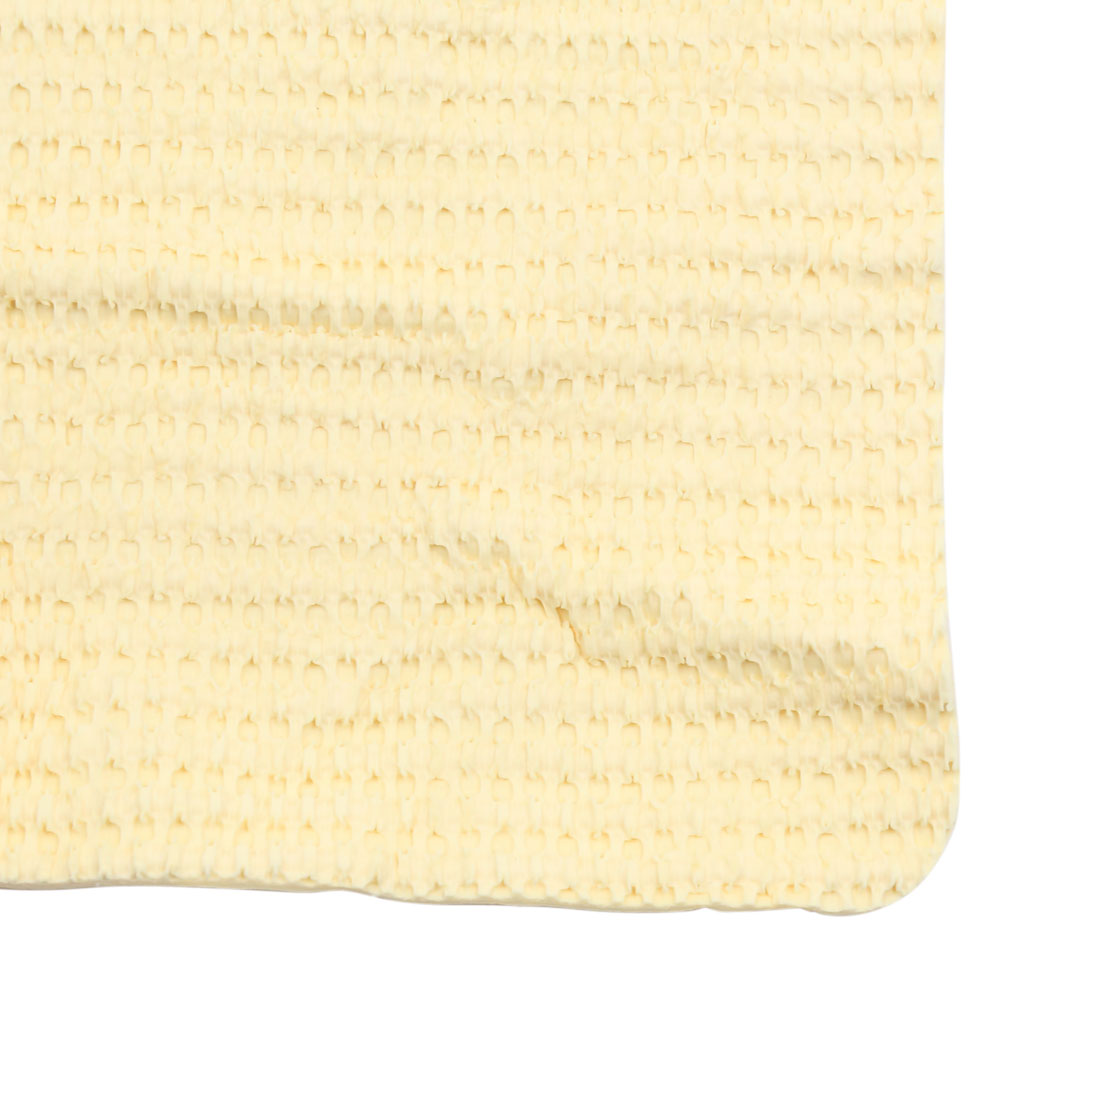 Yellow Car Home Clean Towel Synthetic Chamois Absorbe Washing Cloth 66cm x 43cm - image 2 de 3